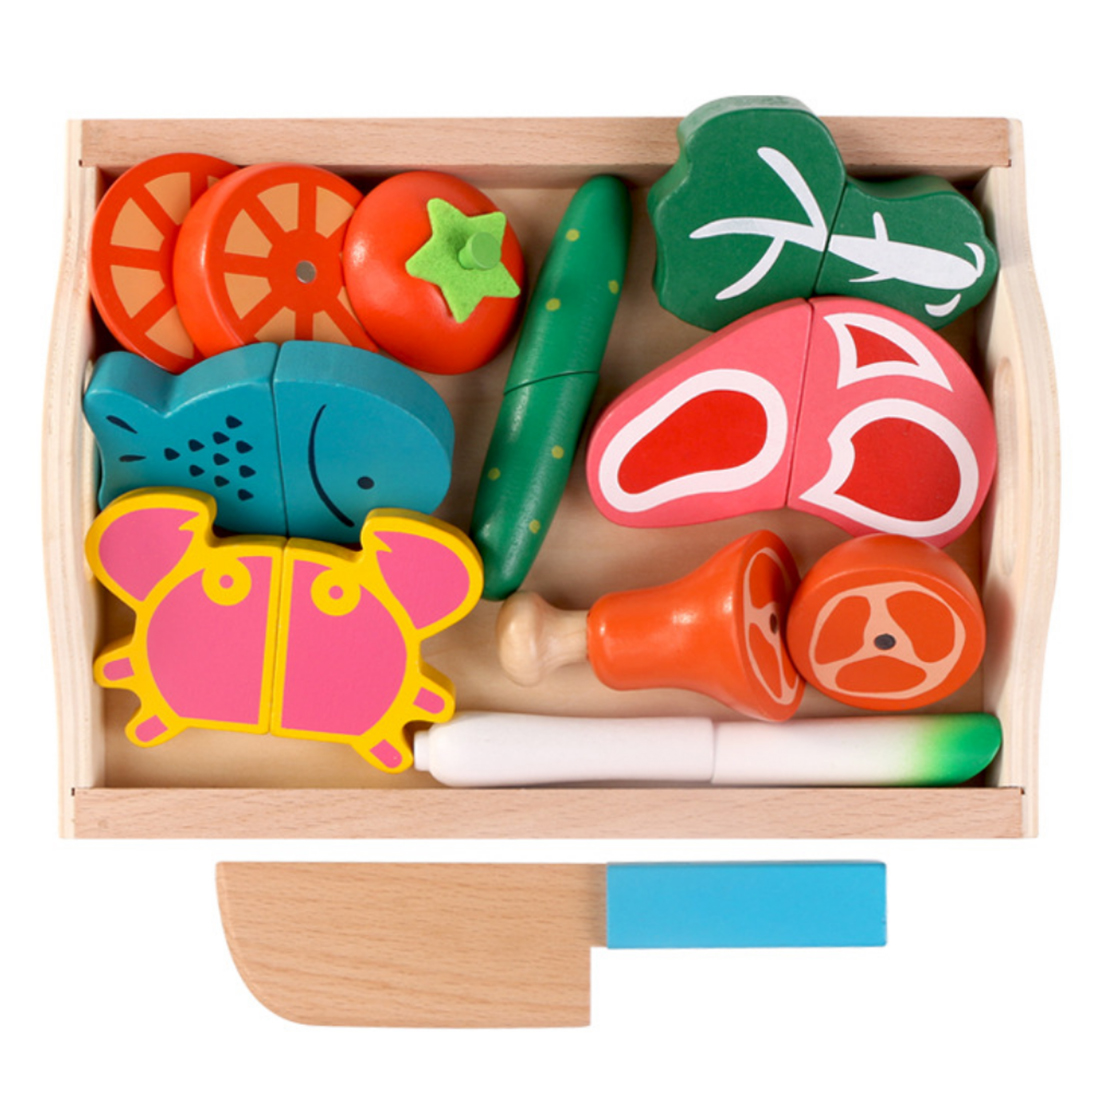 9/10Pcs 3+ Children Kitchen Toys Pretend Play Wooden Tray Magnetic Cutting Meats Vegetable Fish Crab Early Educational Toys9/10Pcs 3+ Children Kitchen Toys Pretend Play Wooden Tray Magnetic Cutting Meats Vegetable Fish Crab Early Educational Toys